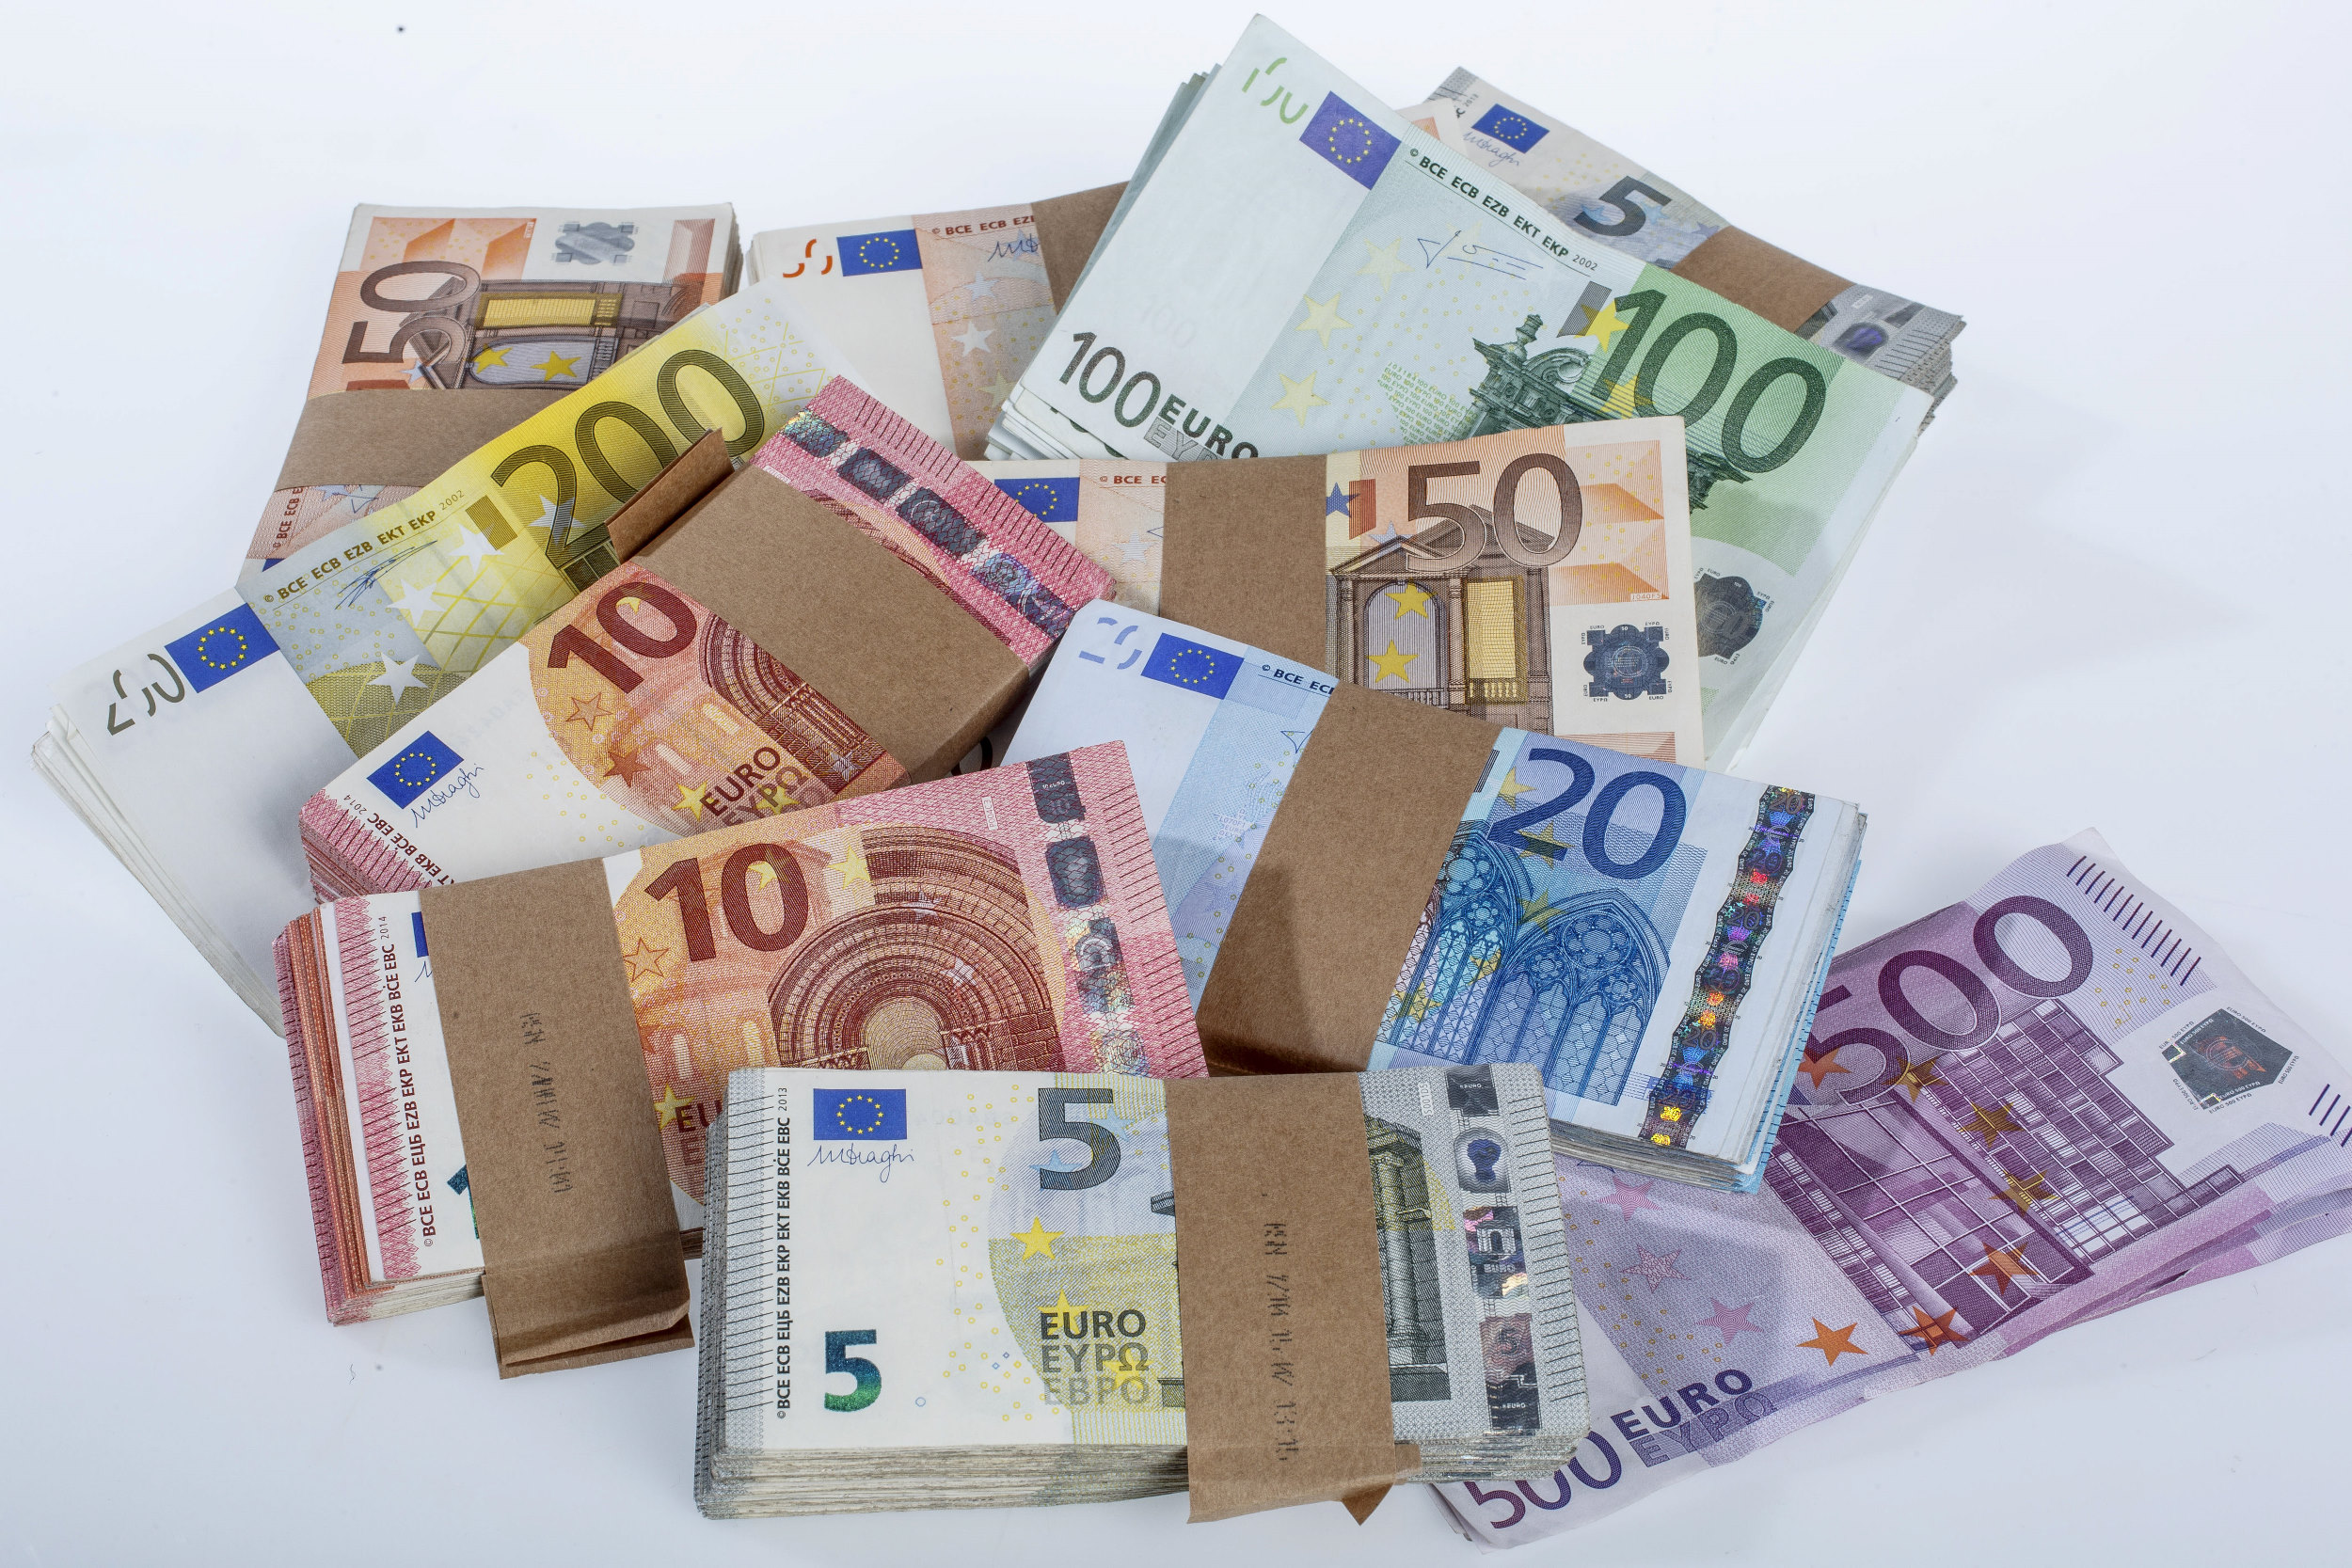 geld, money, euro, sparen, savings, spaarpot, pensioen, retirement, biljet, bills, briefgeld, papiergeld, contant, cash, schulden